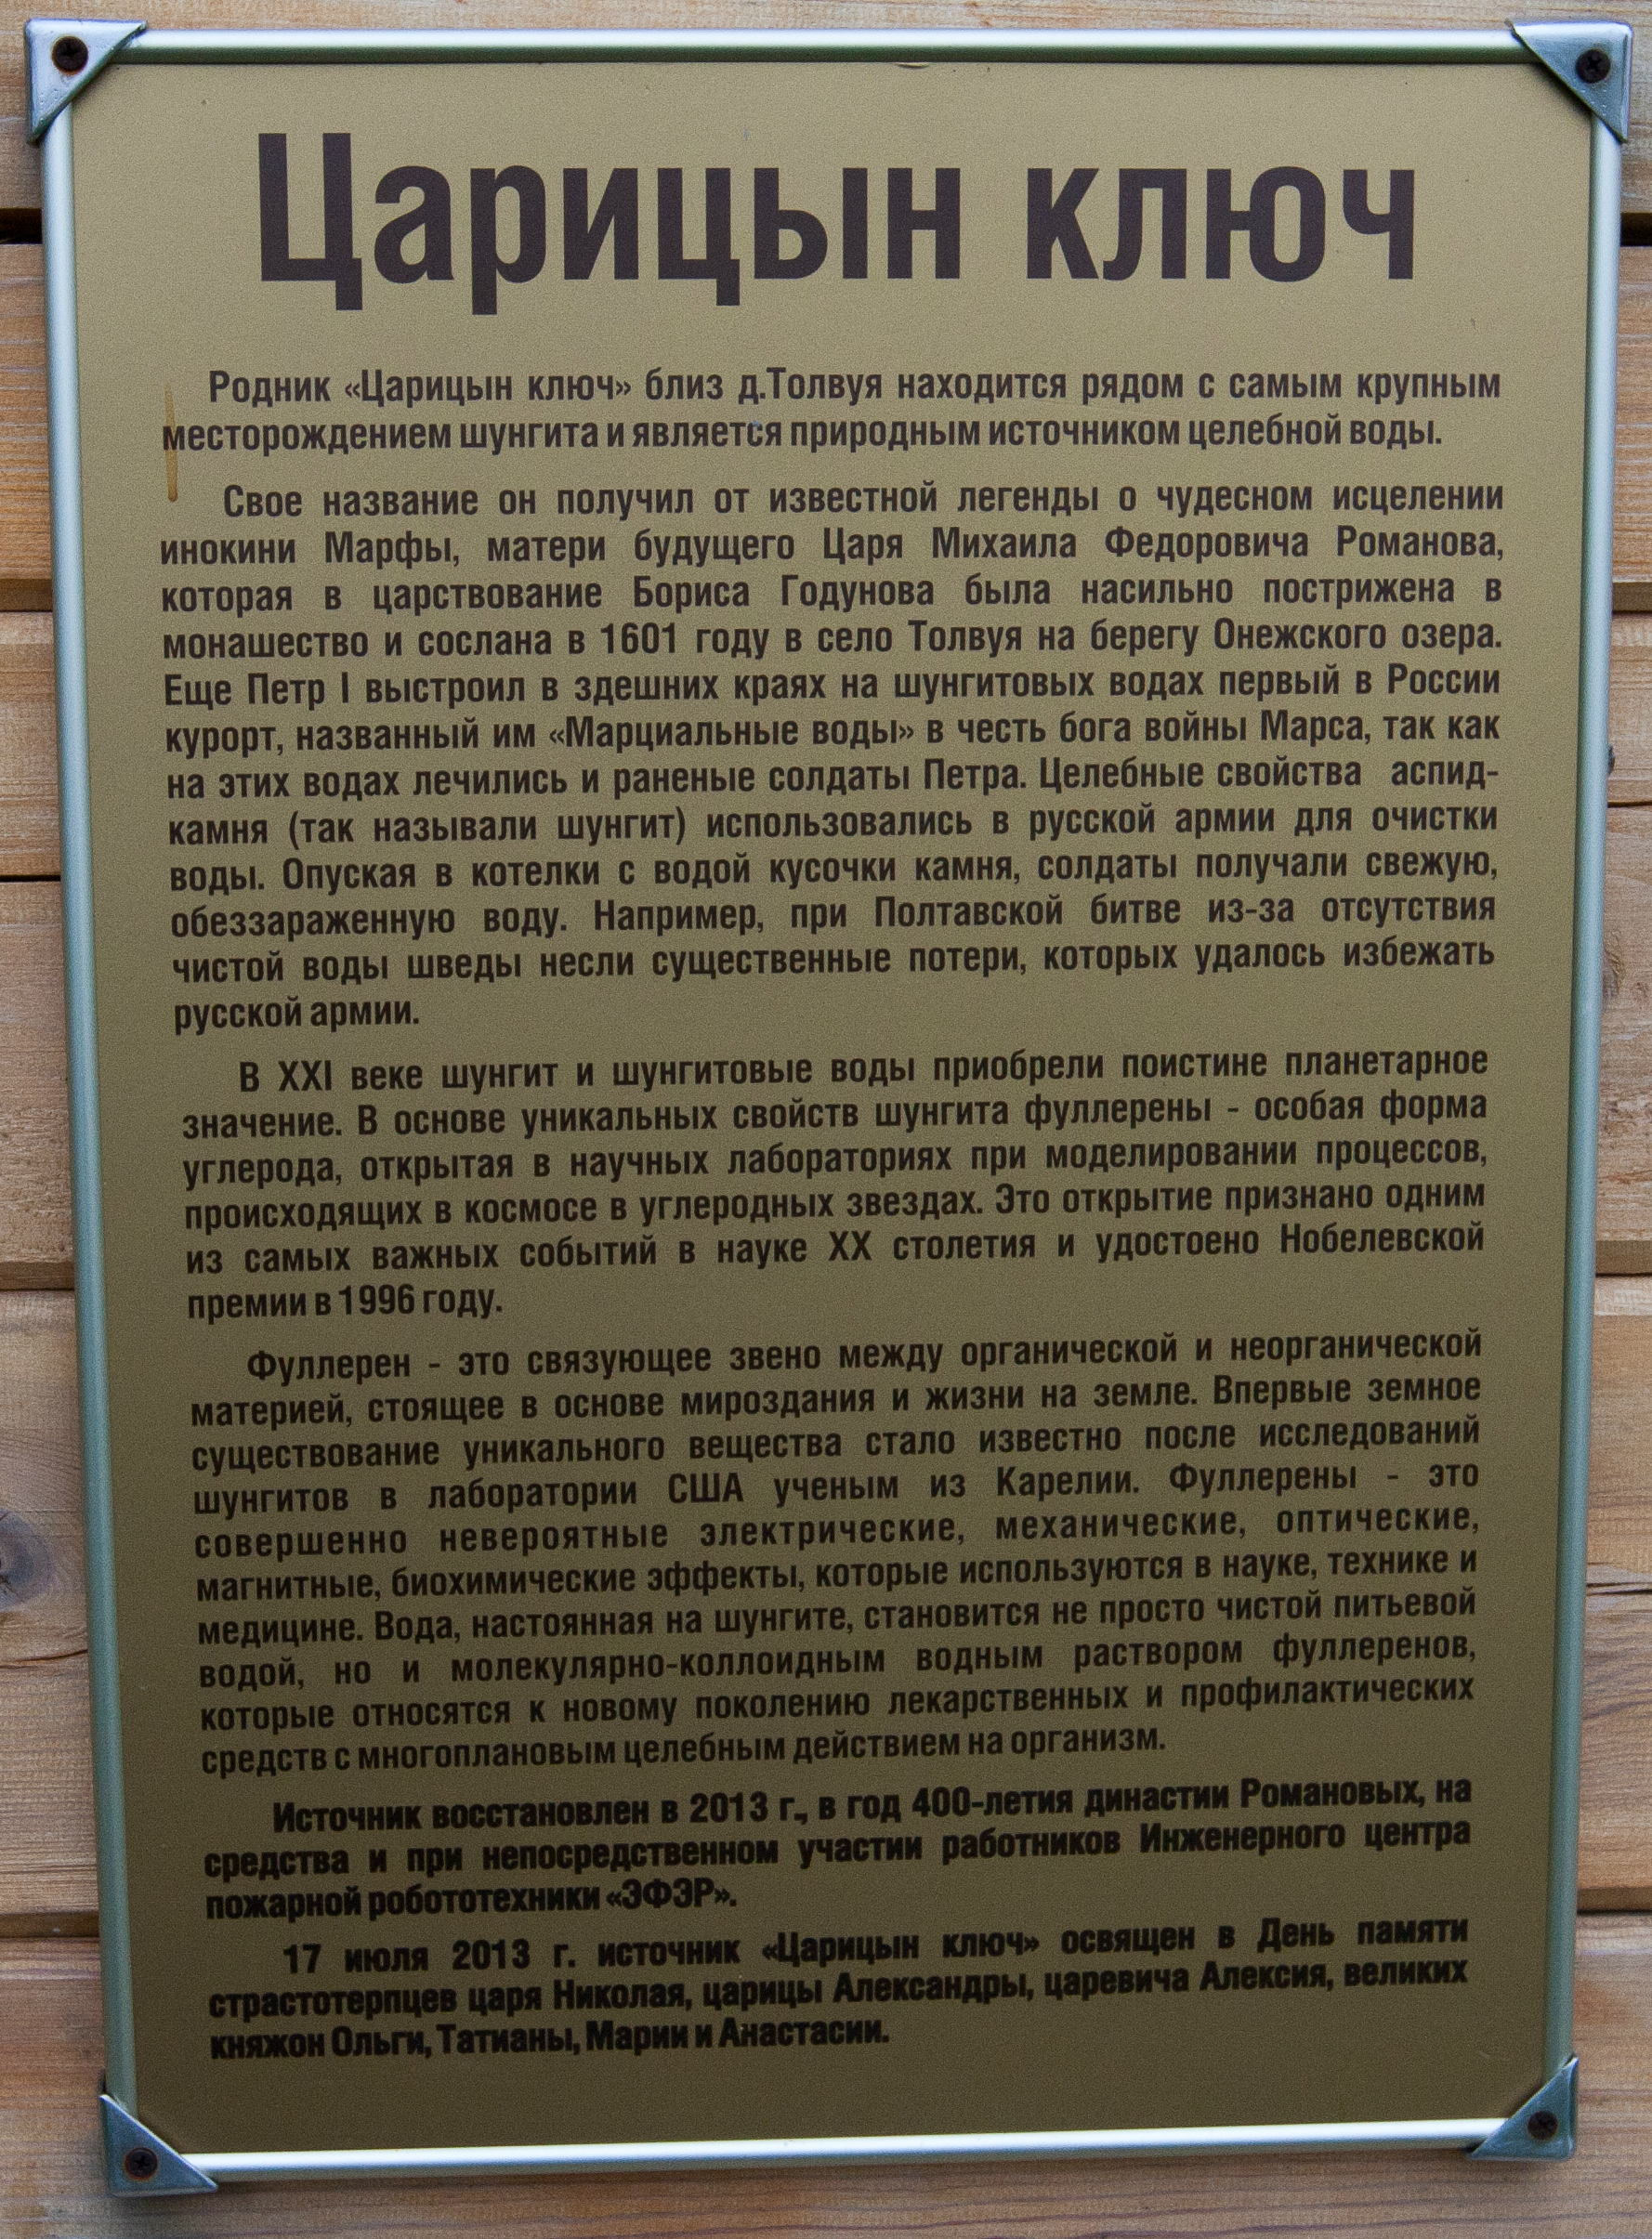 A plaque at the entrance to the Tsaritsyn key